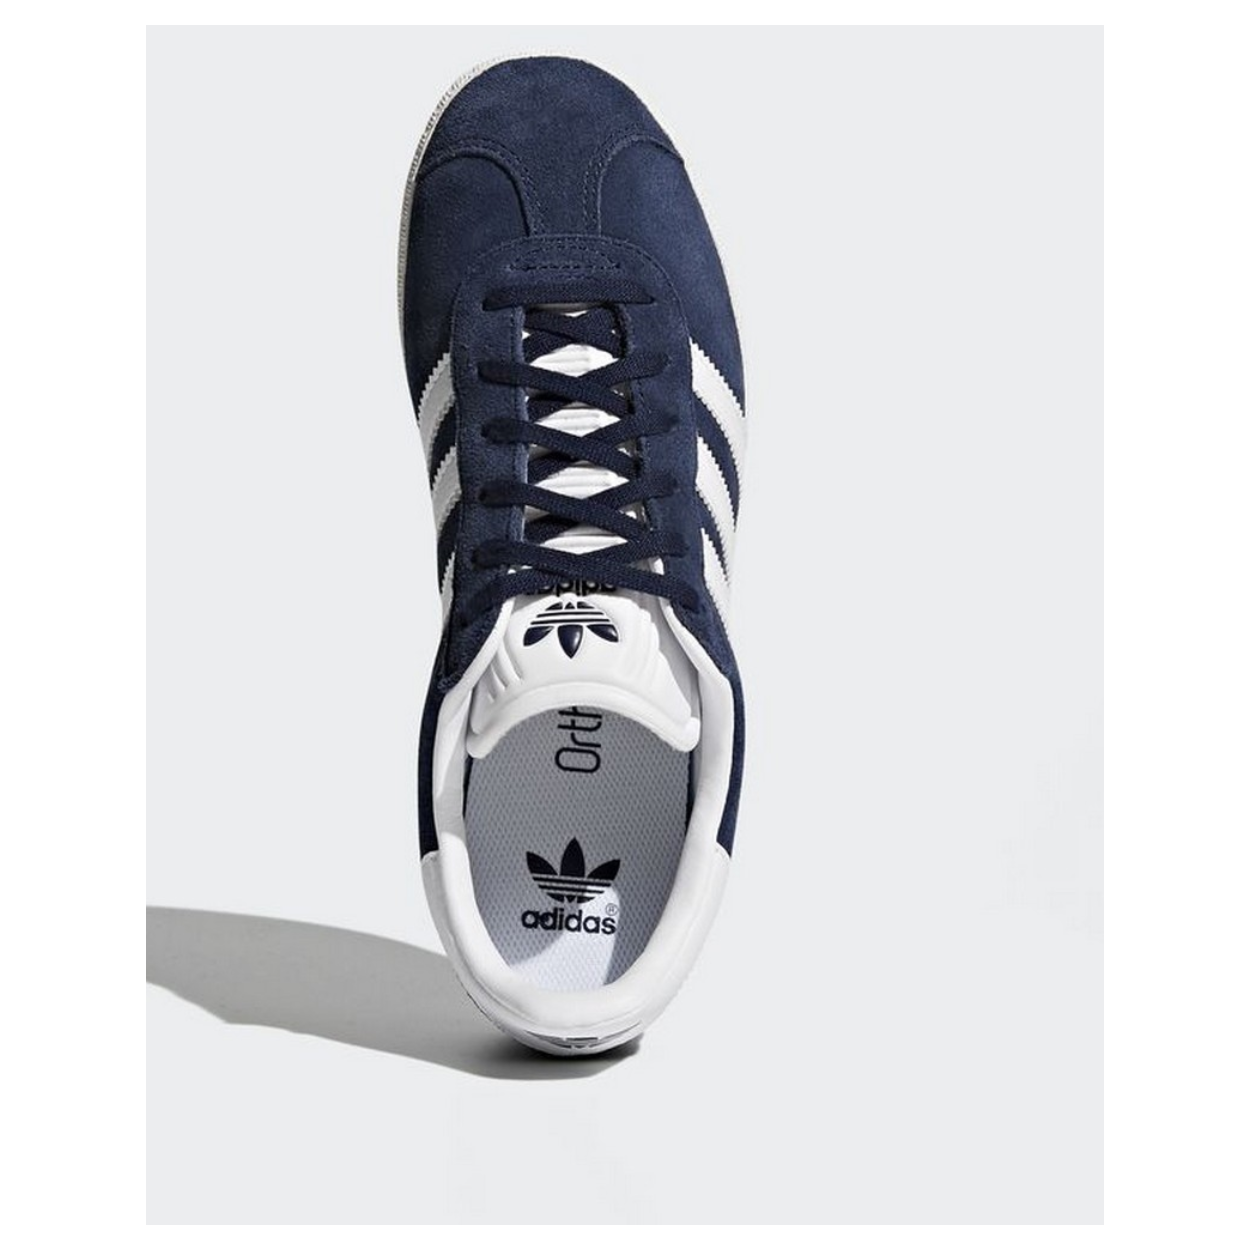 199f27d431d US $70.92 |Sneakers blue adidas gazelle BY9144 and WHITE jr-in Running  Shoes from Sports & Entertainment on Aliexpress.com | Alibaba Group